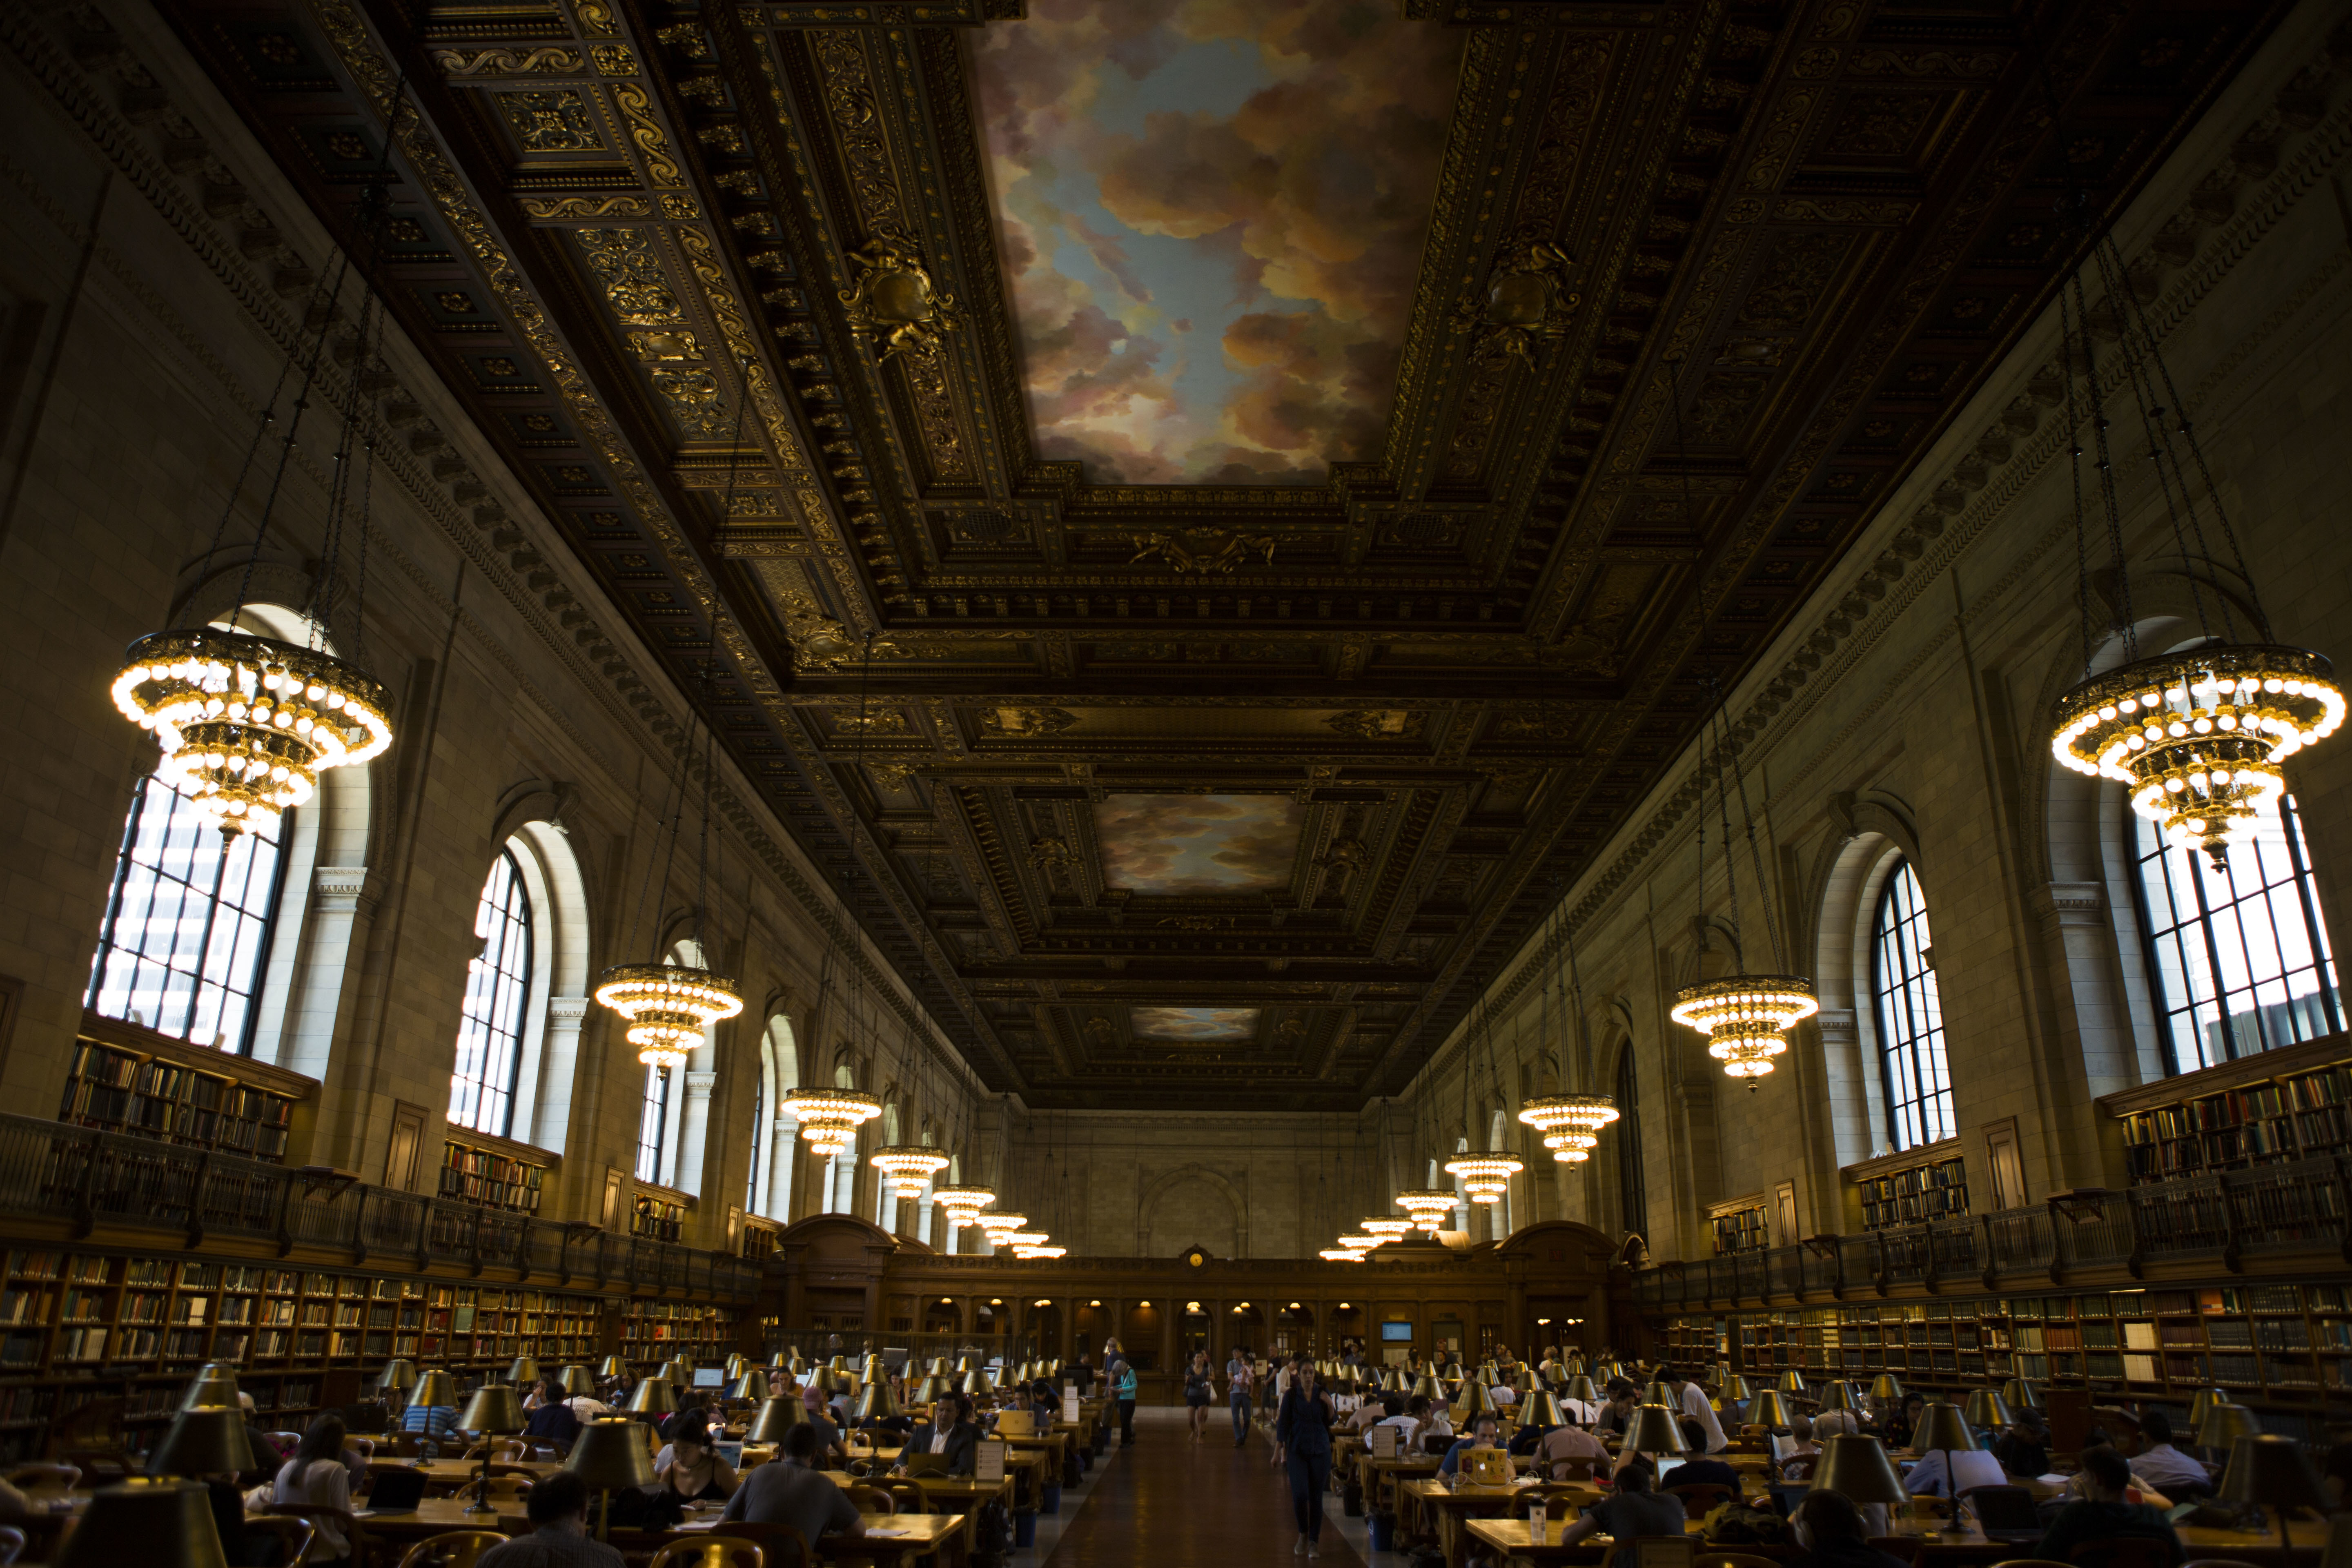 Library goers quietly work in Rose Main Reading Room at the New York Public Library in New YorkLandmarks, New York, USA - 18 Jul 2017